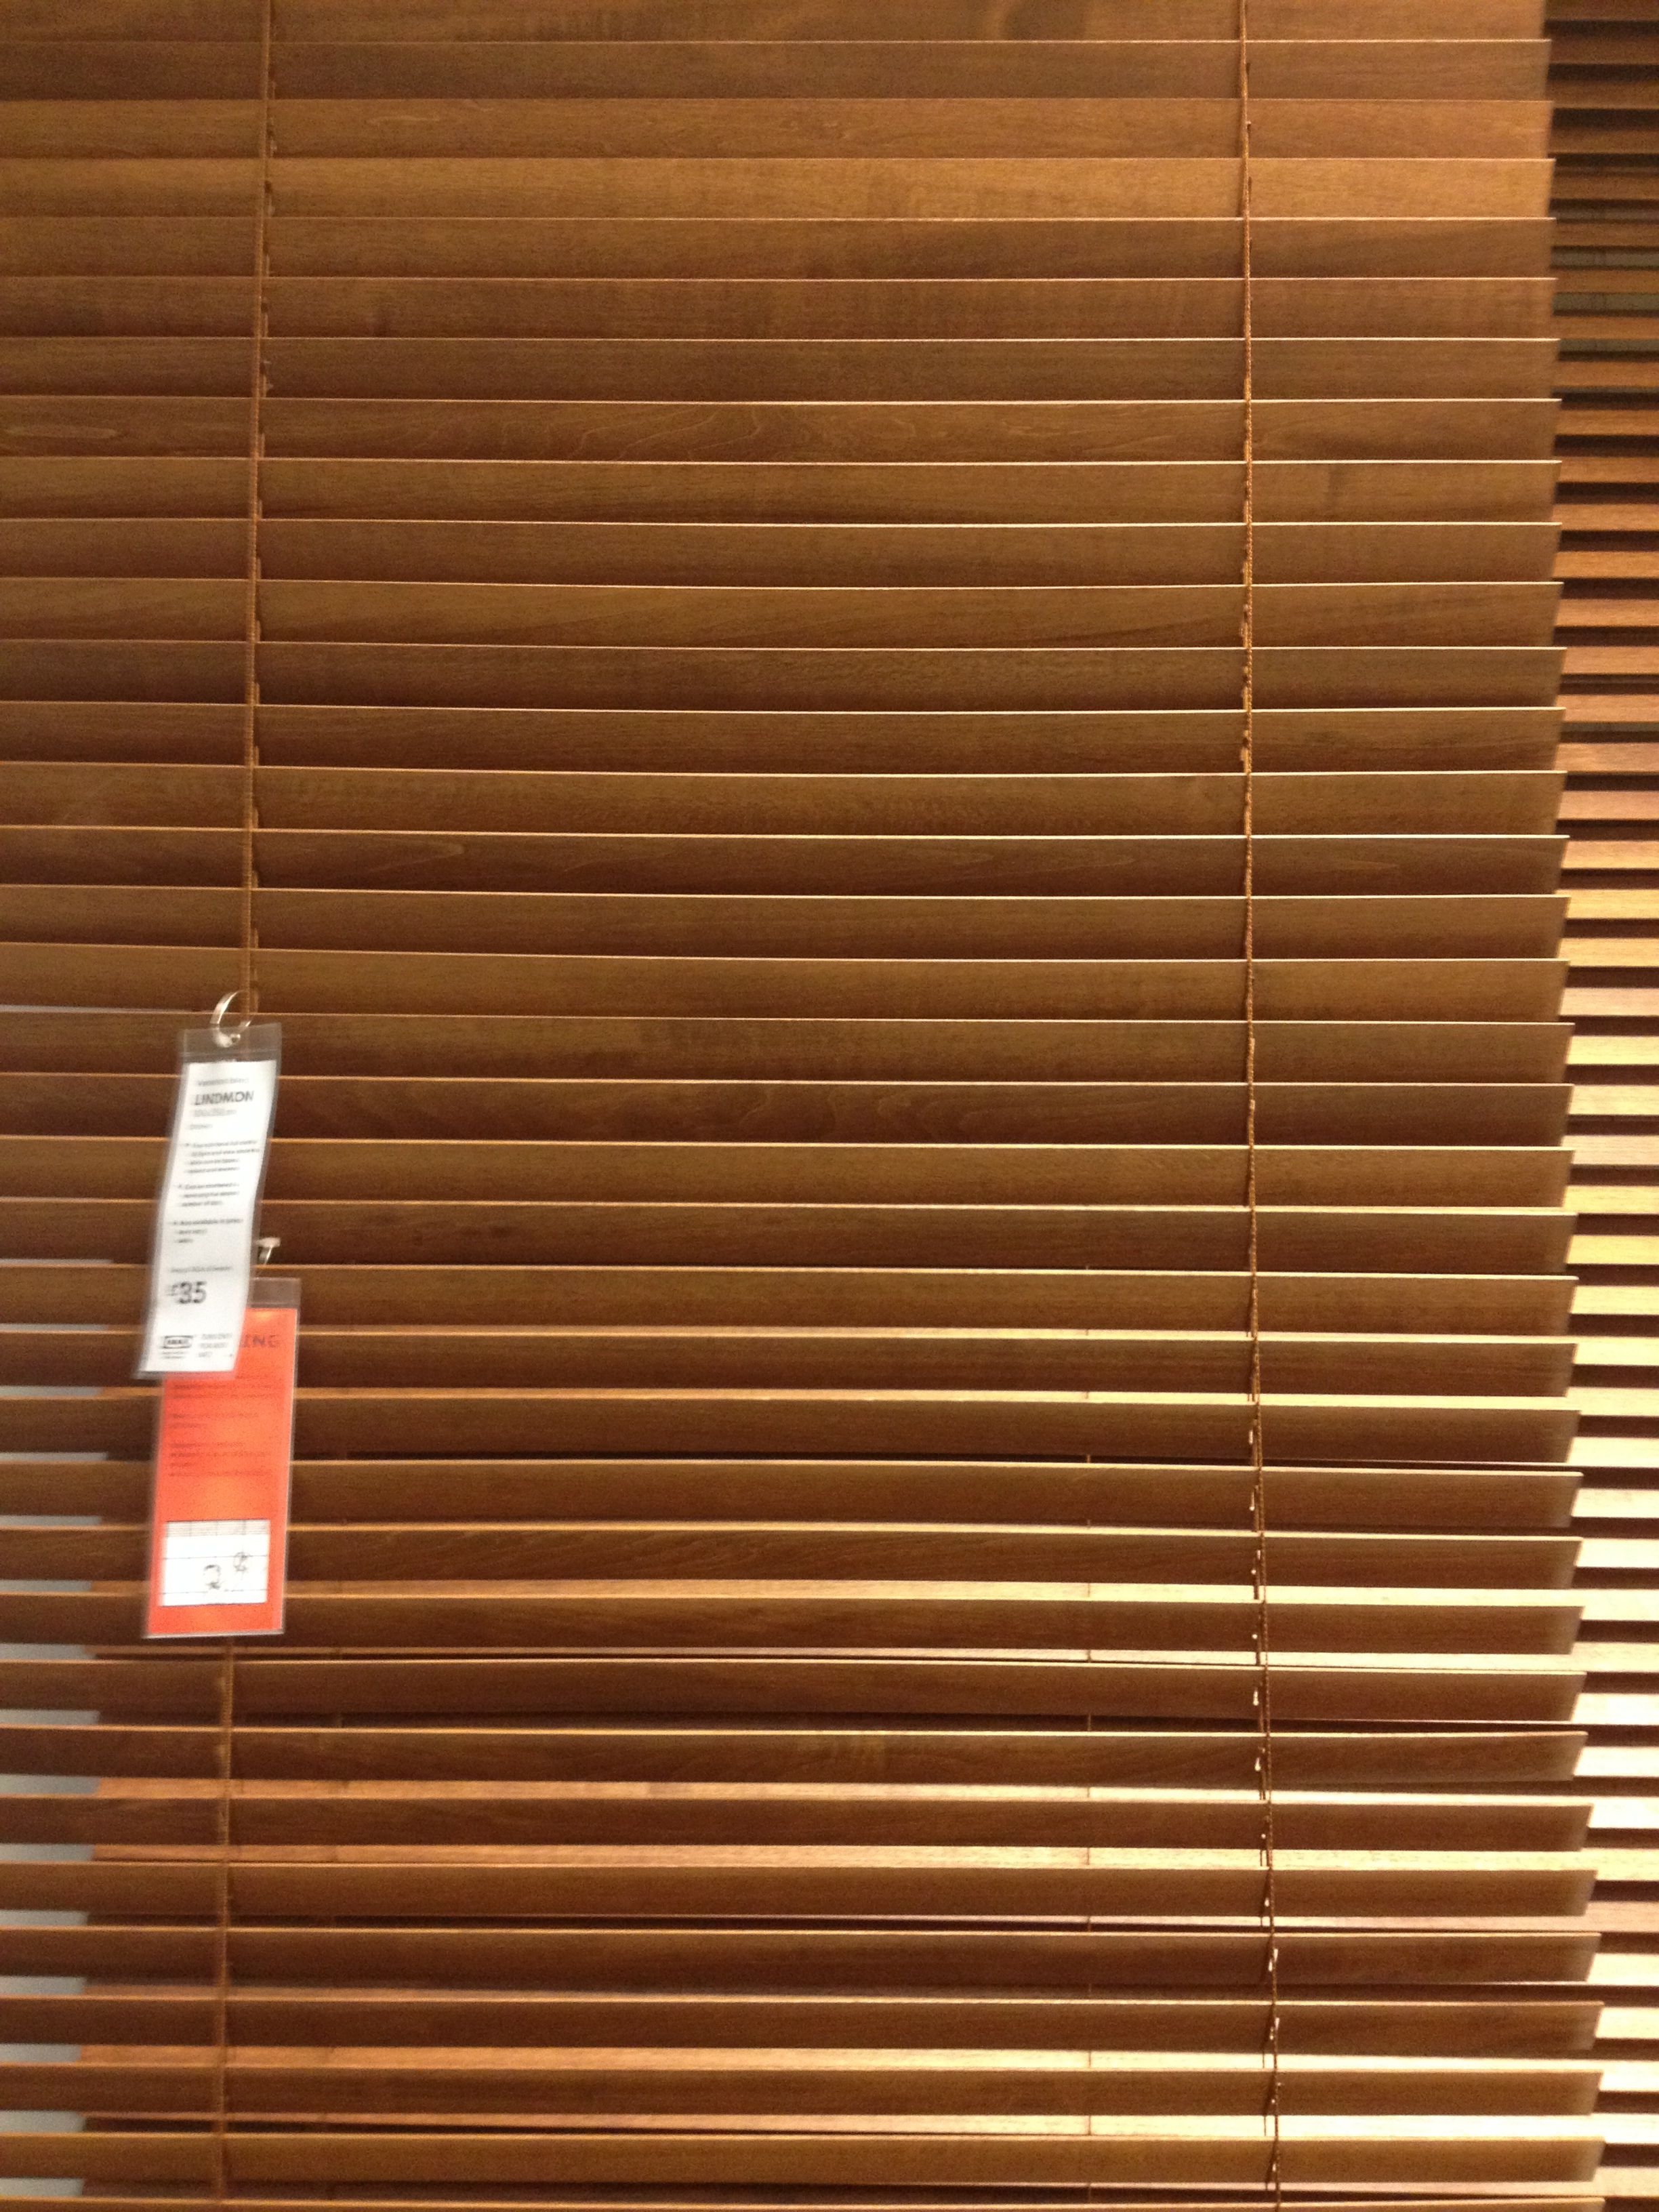 Window Blinds Ikea Wooden Blinds Ikea Stuff To Buy In 2019 Blinds Kitchen